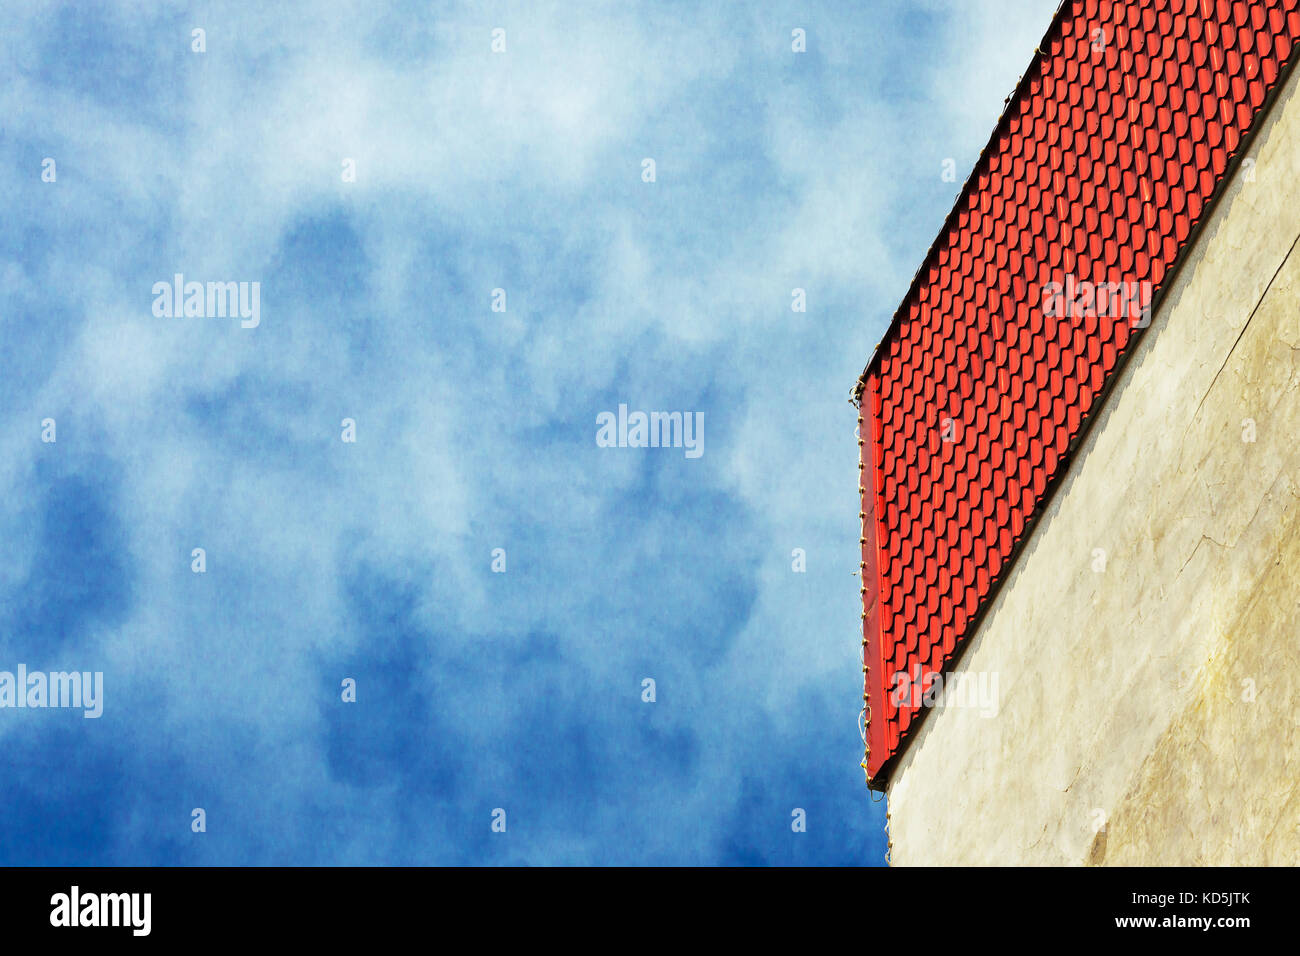 Red Metal Roof Stock Photos Amp Red Metal Roof Stock Images